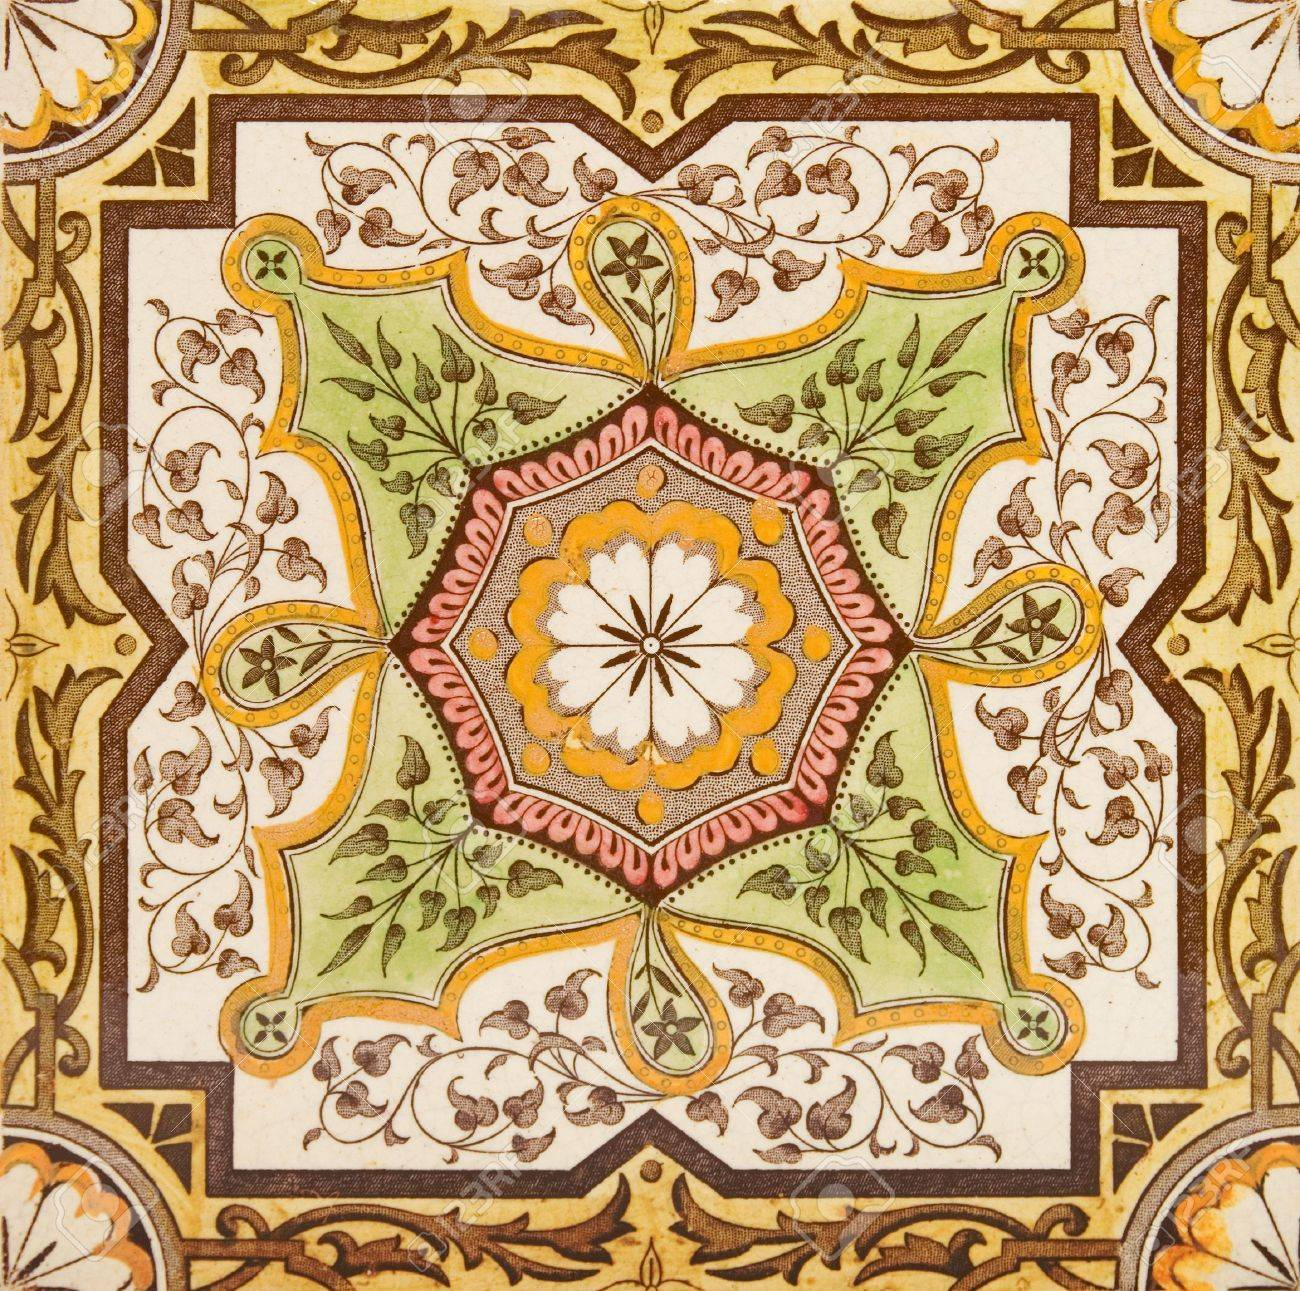 Decorative Wall Tile From The Late Victorian Period C1880 ...